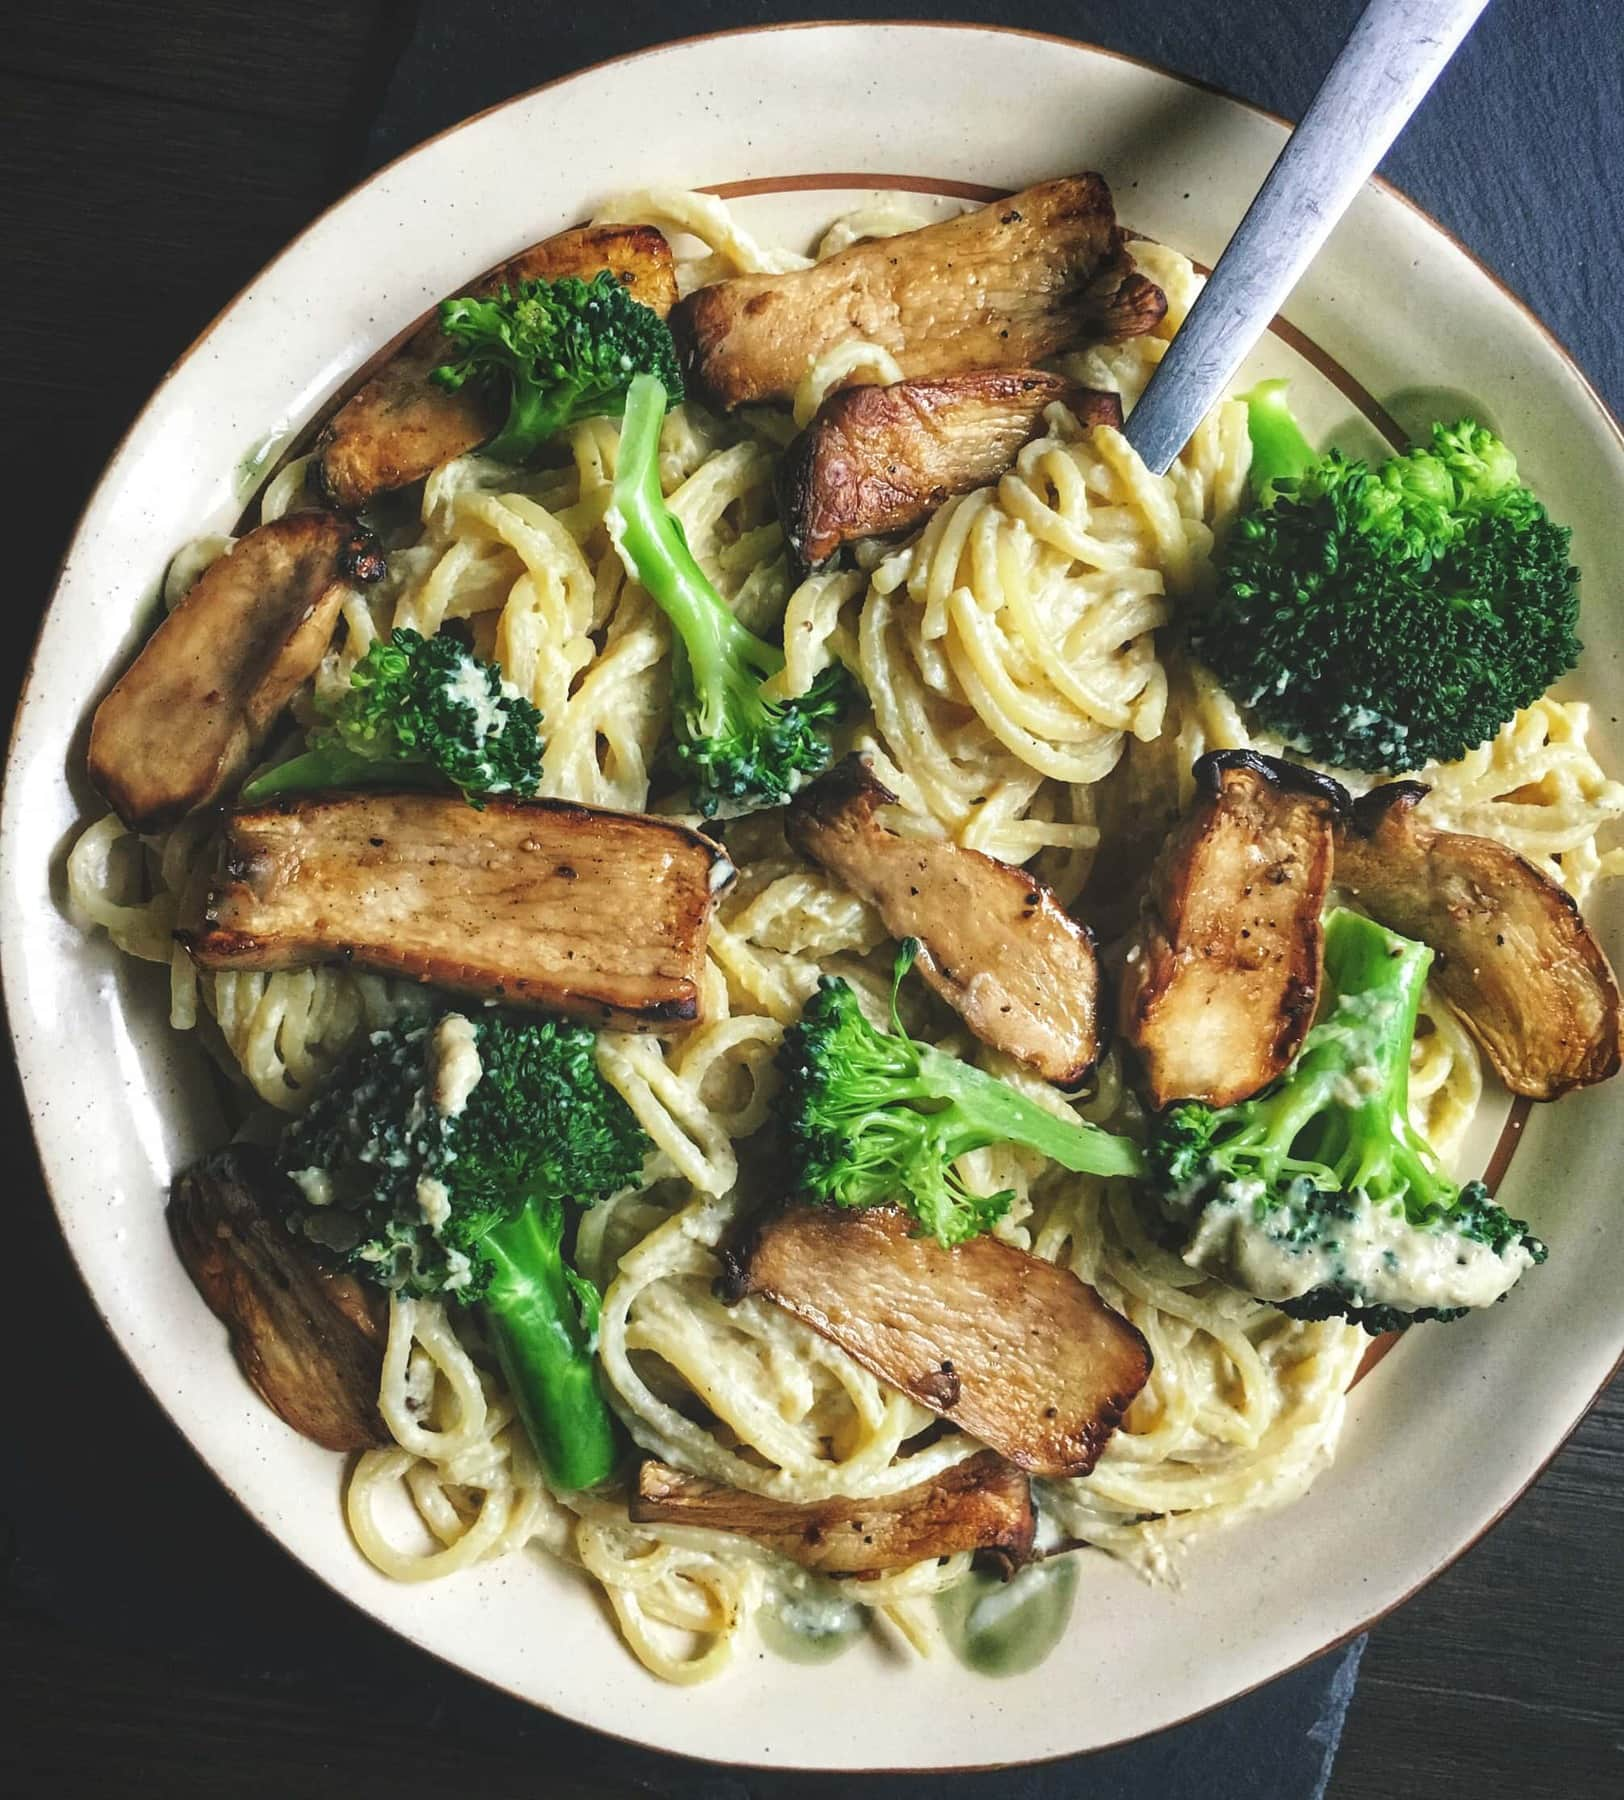 creamy vegan pasta with mushrooms and broccoli